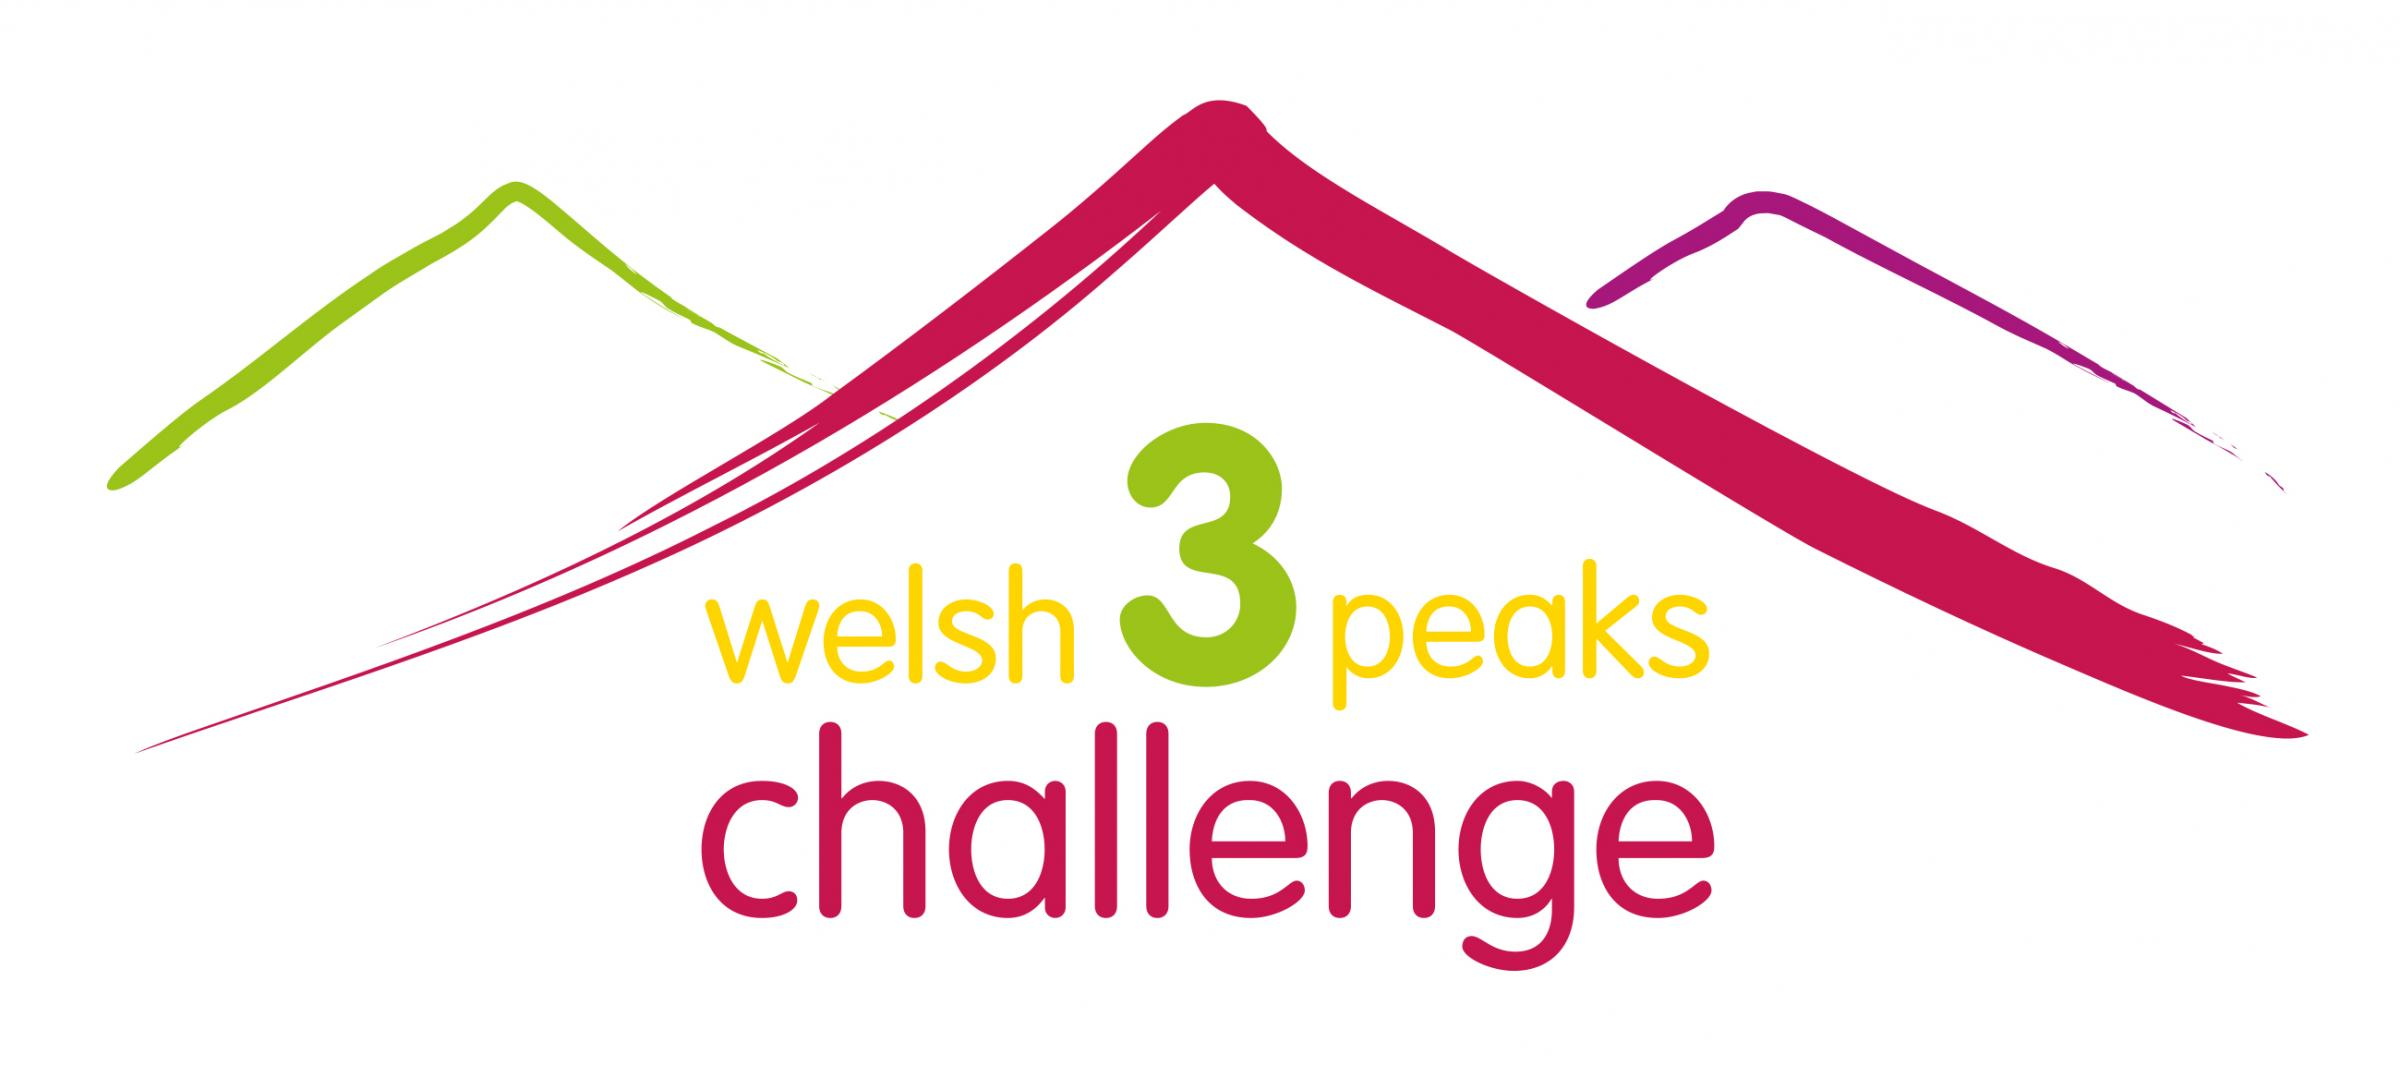 GE Aviation Wales welsh 3 peaks challenge